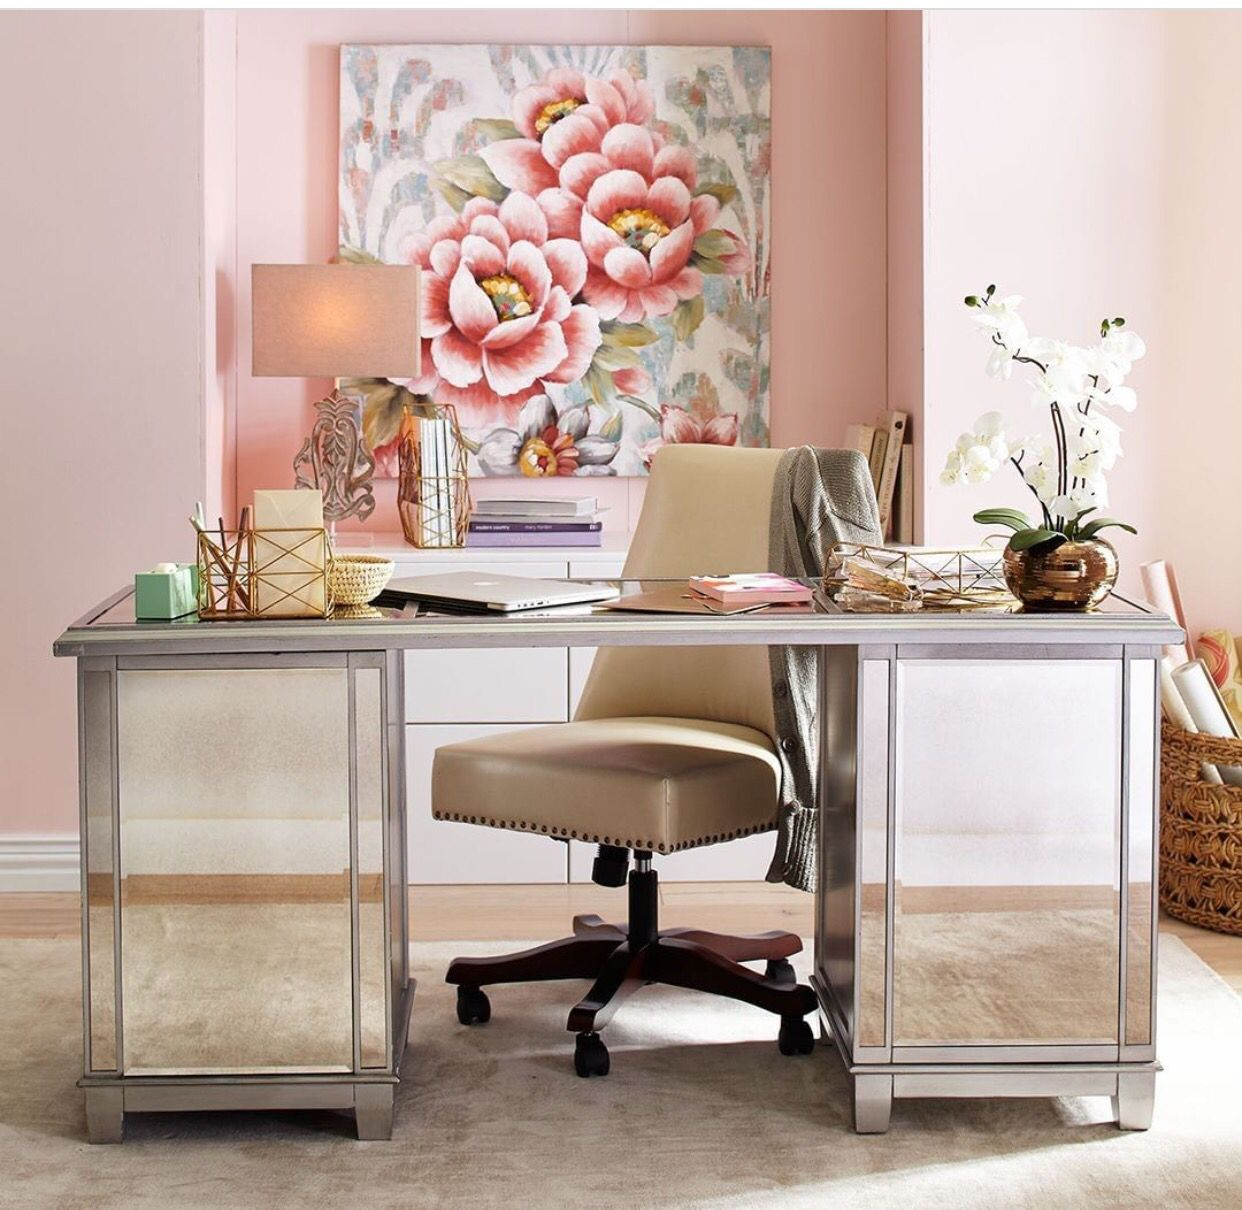 Pier 1 Imports   Office Decor. Office Makeover, Office Spaces, Home Office  Space